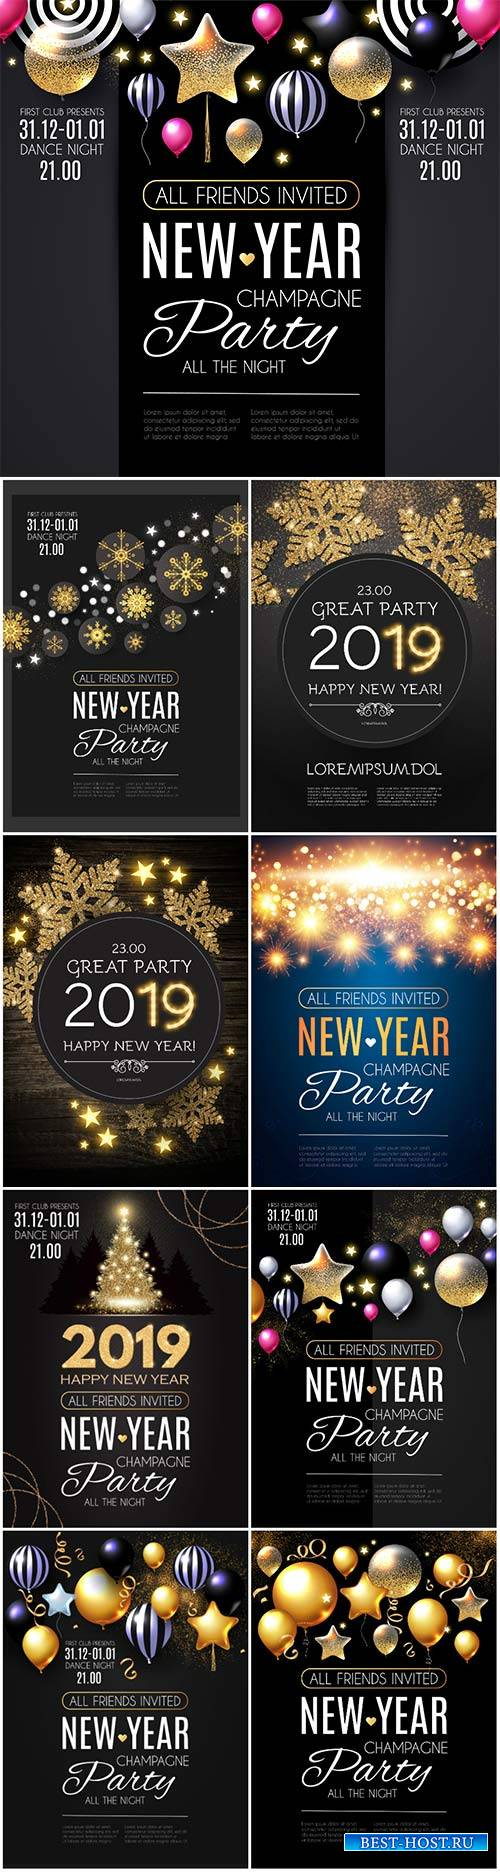 Happy New Year party poster vector template